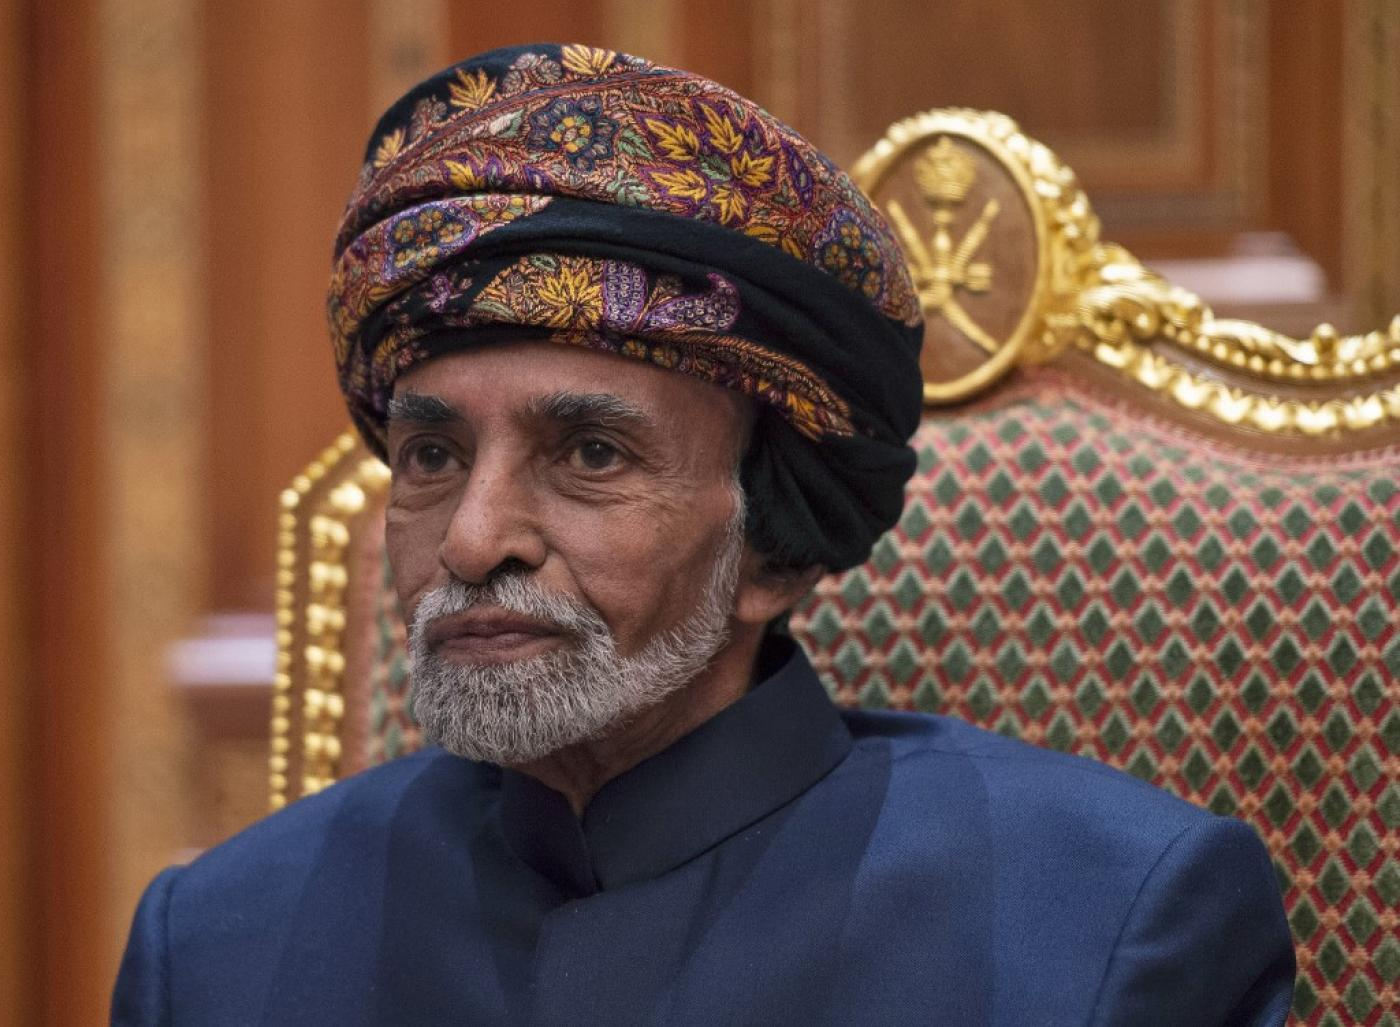 Oman's Sultan Qaboos is pictured at his palace in Muscat on 14 January (AFP)